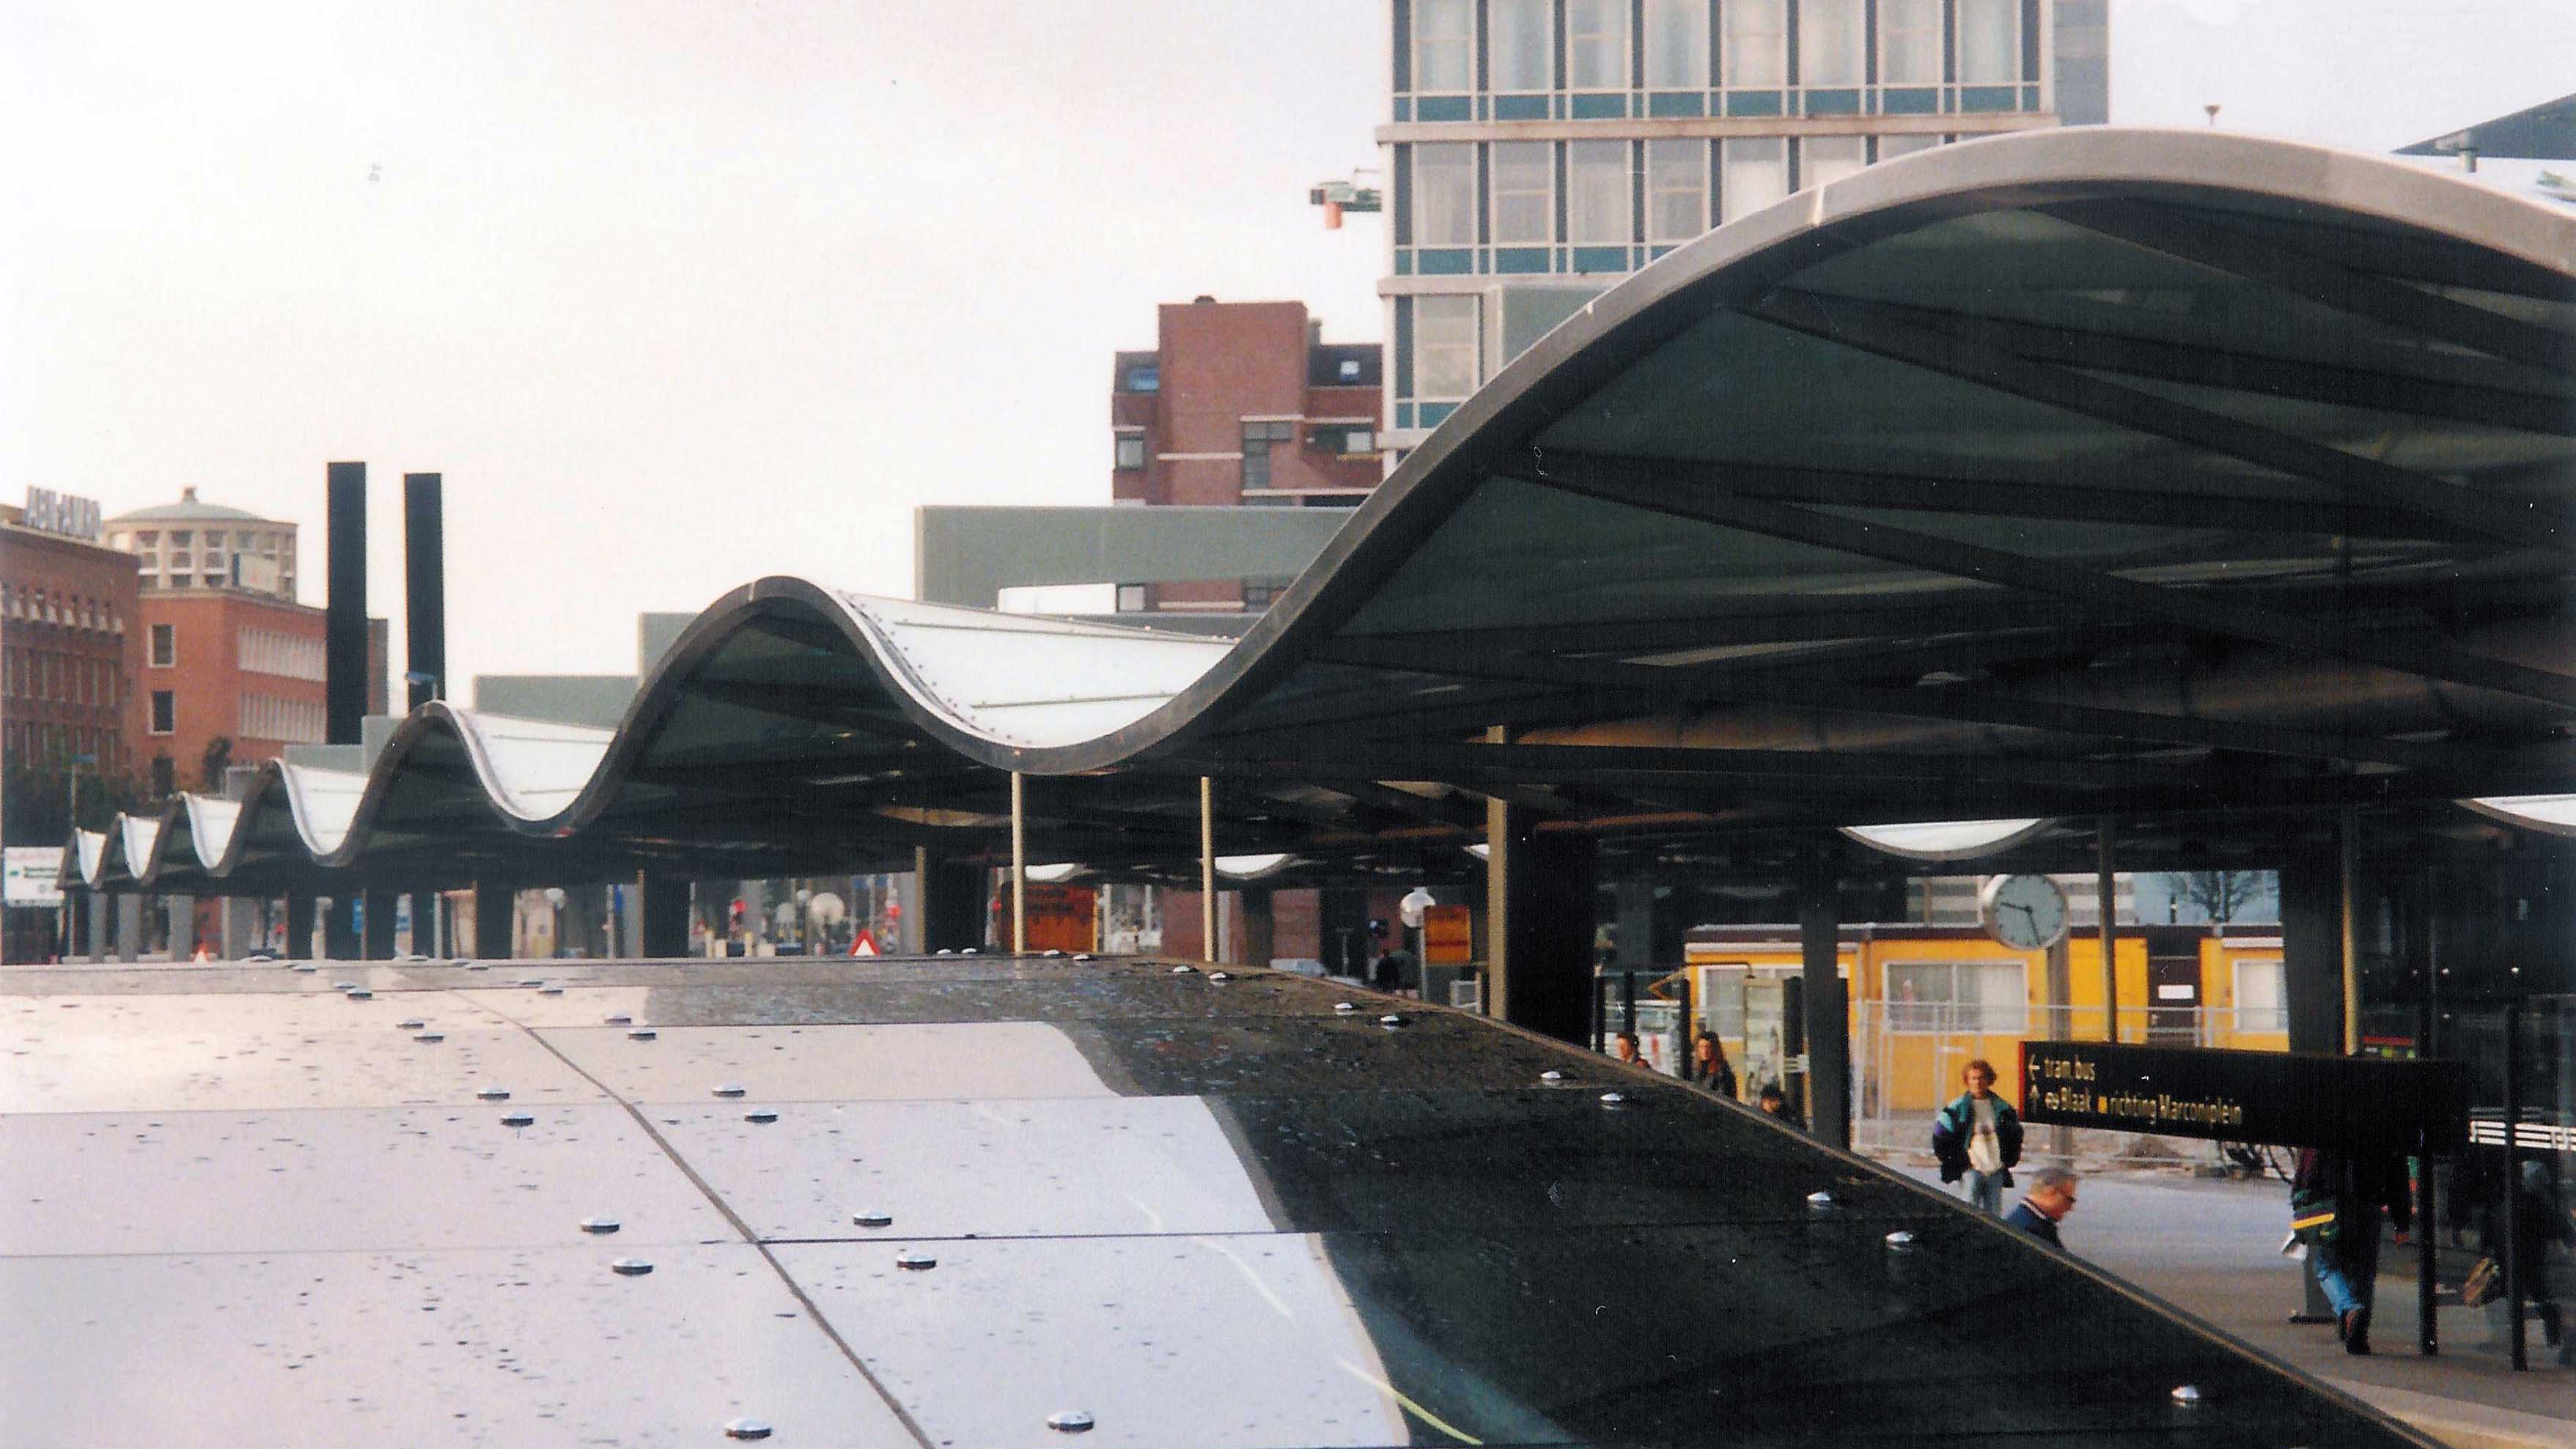 station blaak rotterdam architect marja haring